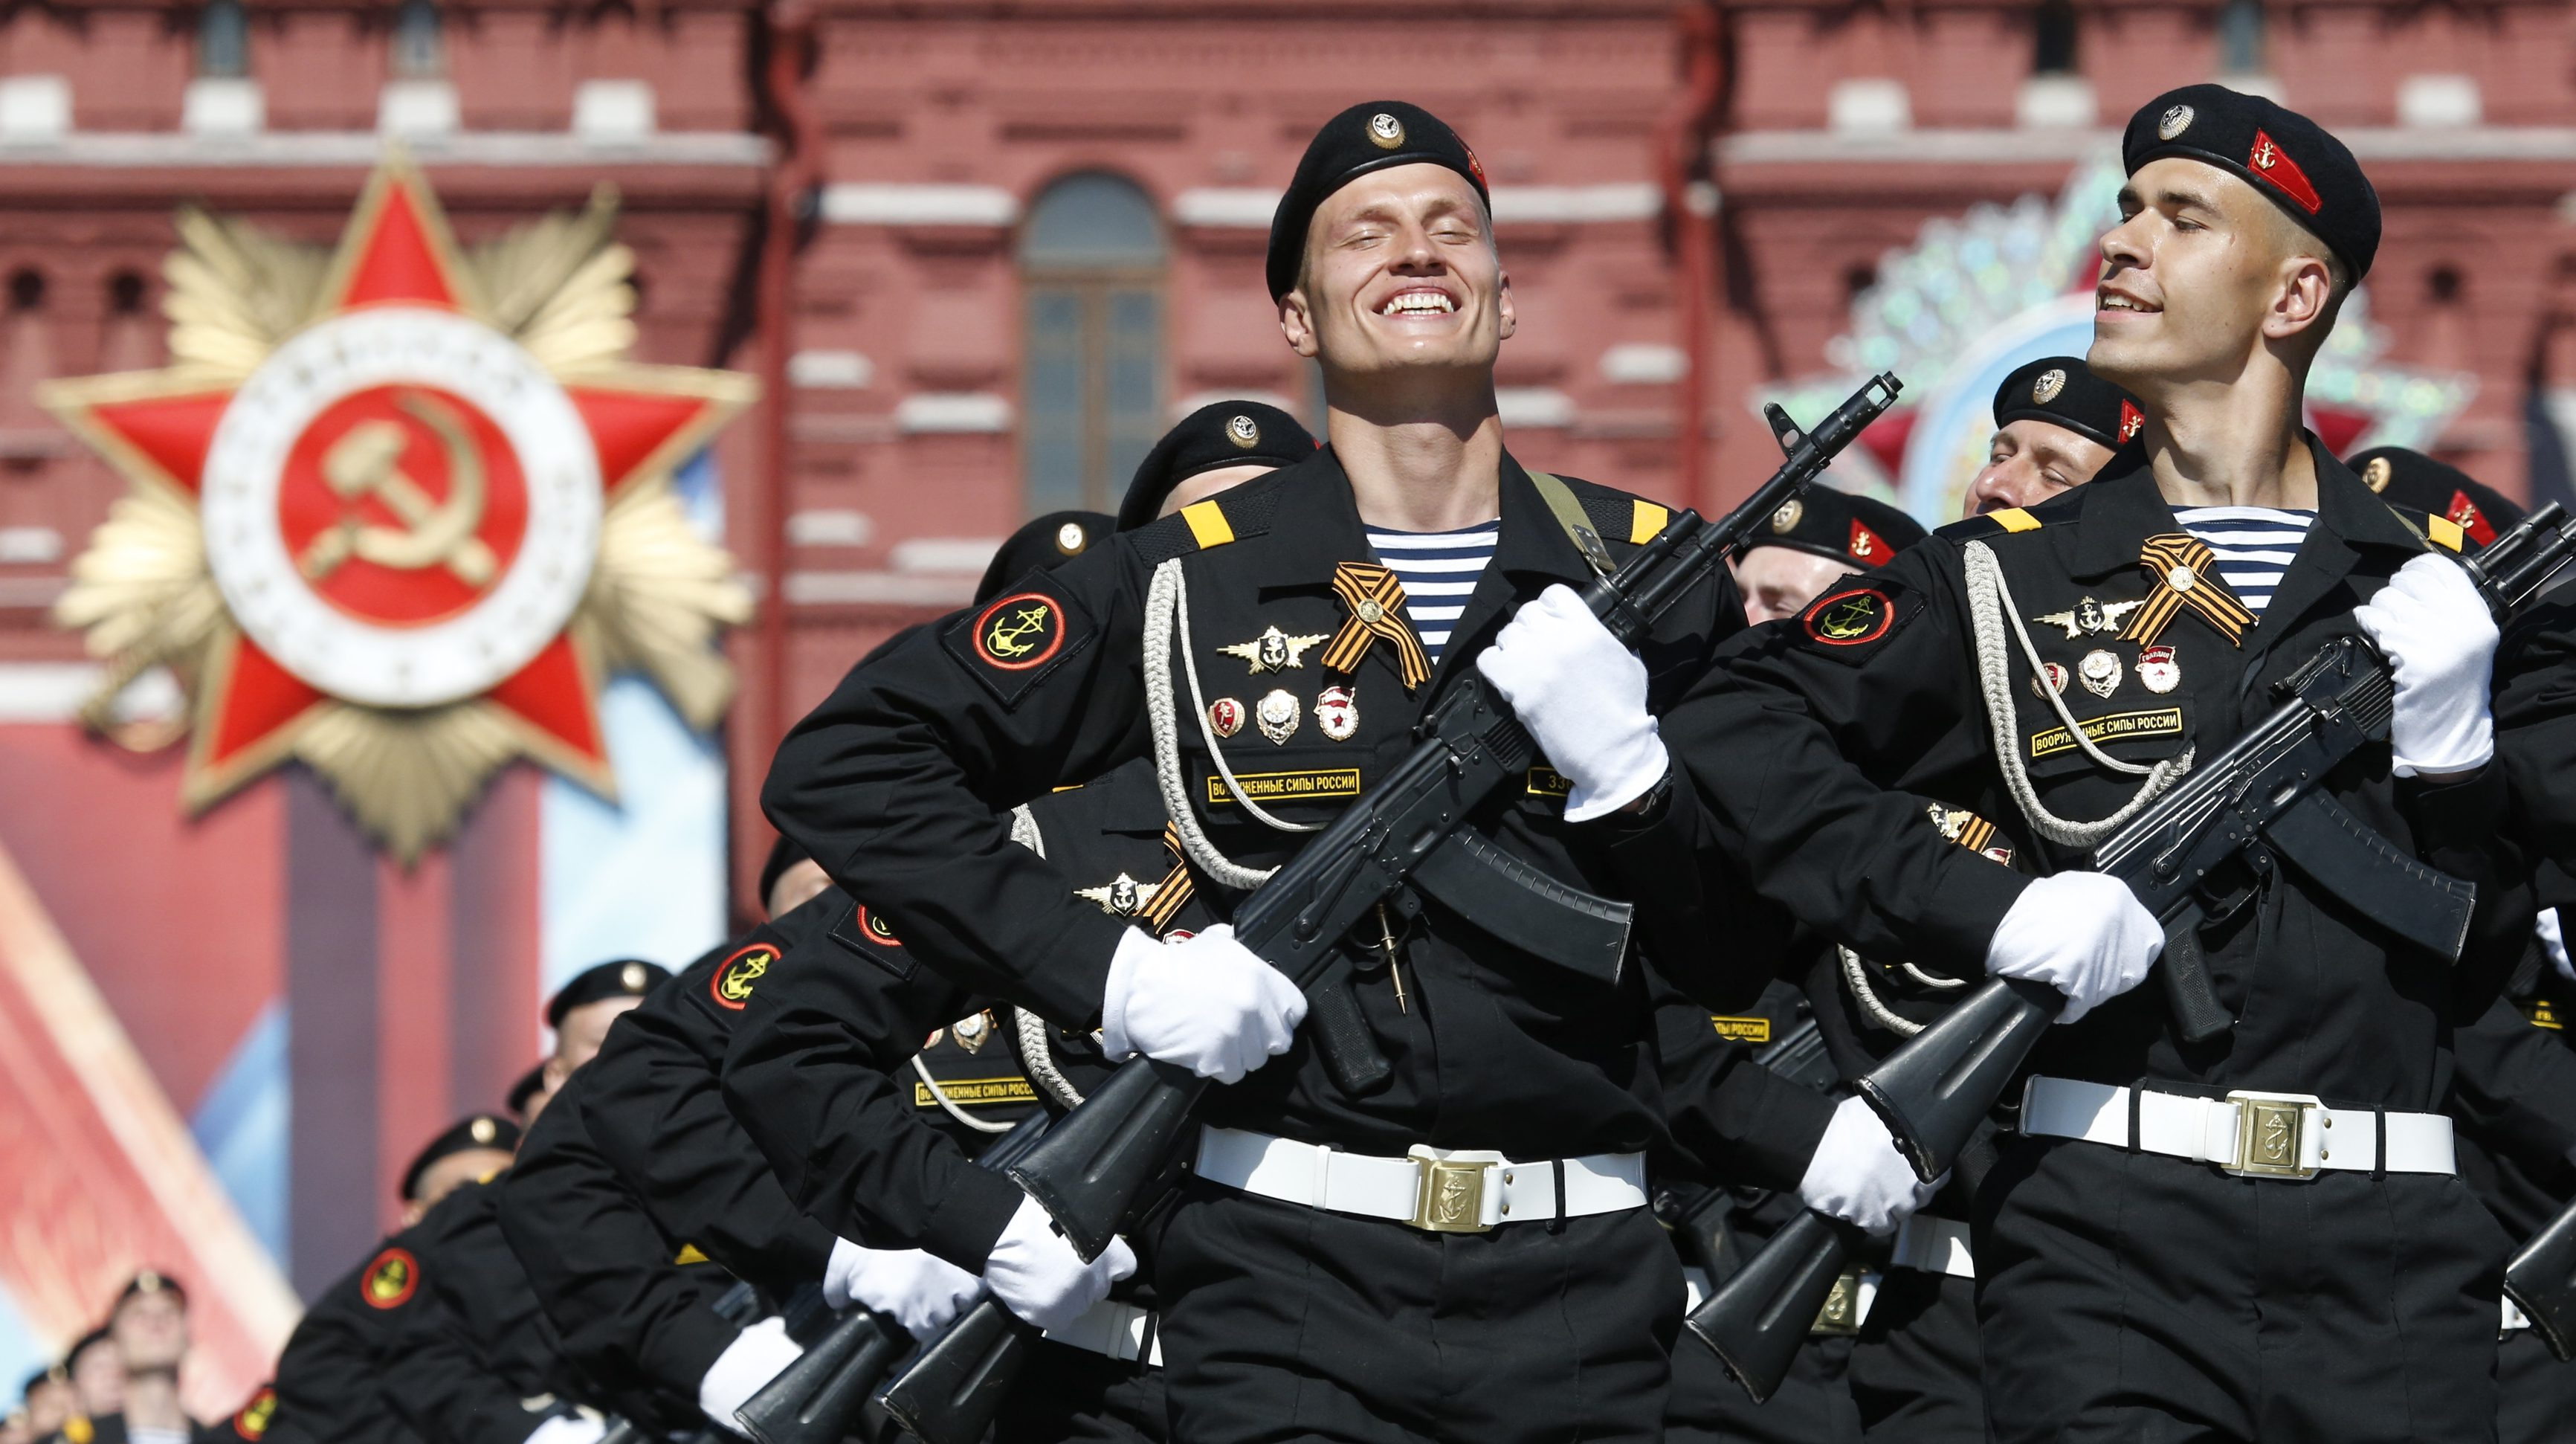 Russia celebrates World War Two Victory Day with a massive